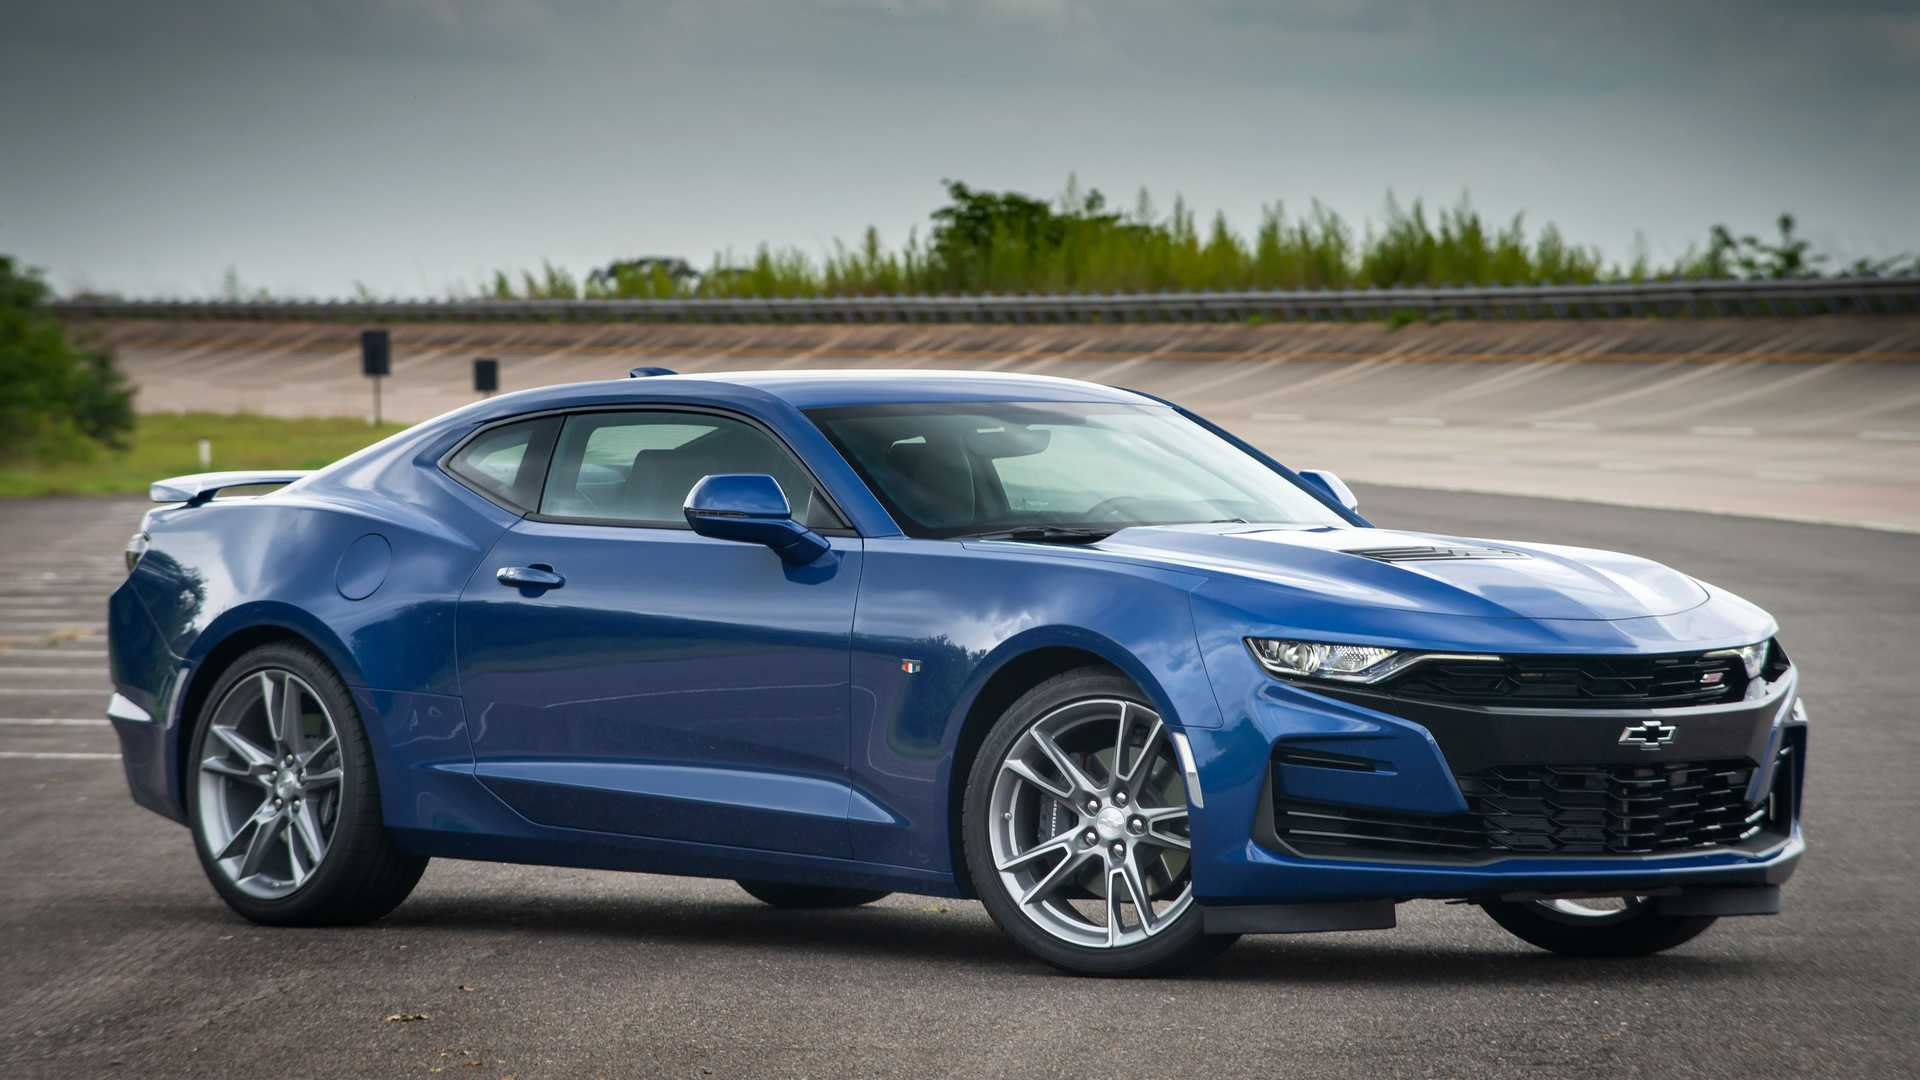 Crazy Chevy Camaro Lease Deals Have V8 Cheaper Than Four-Cylinder 1LT